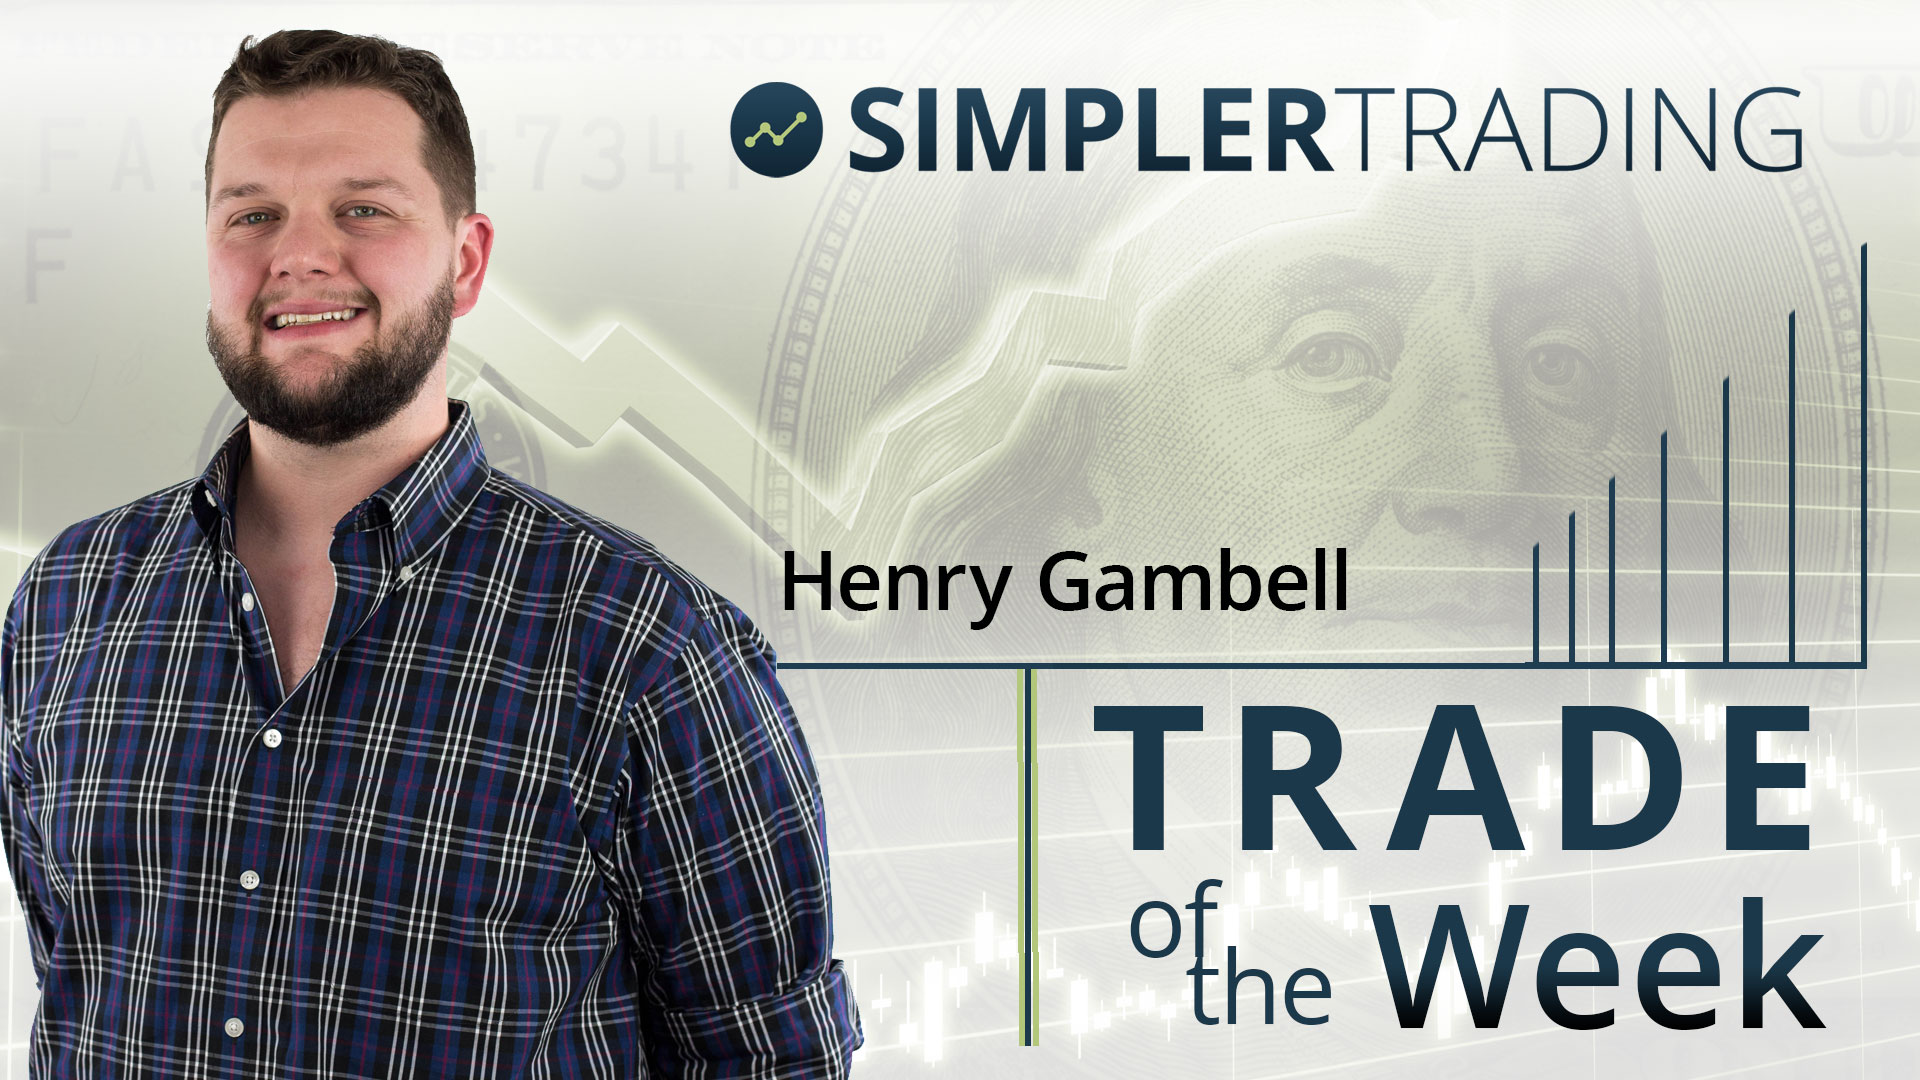 Trade of the Week Henry Gambell